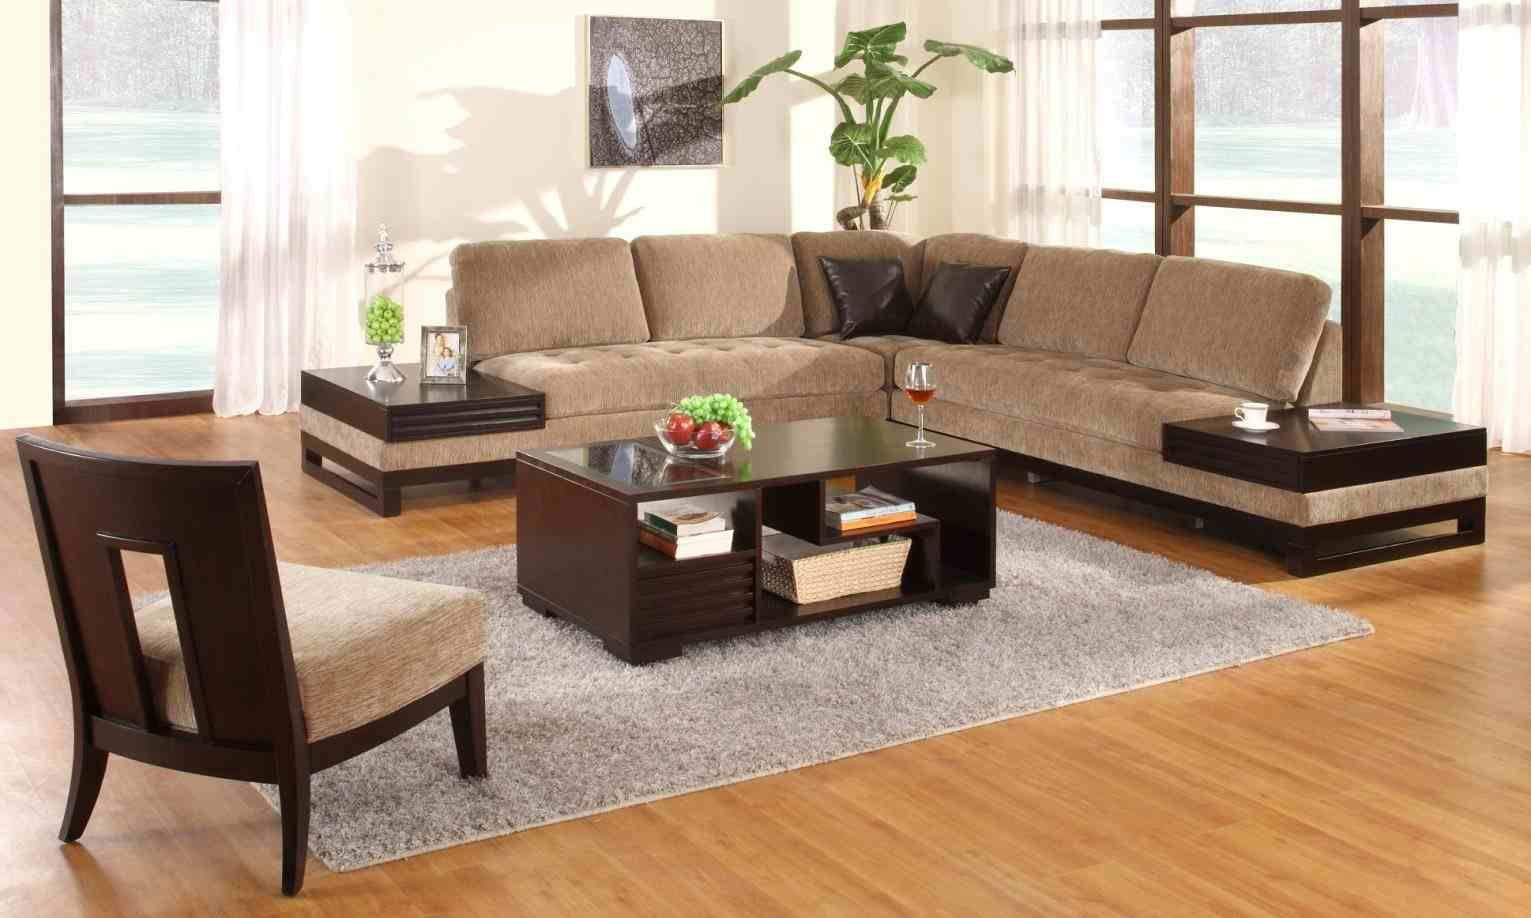 Simple Sofa Set Designs For Small Living Room Cheap Living Room